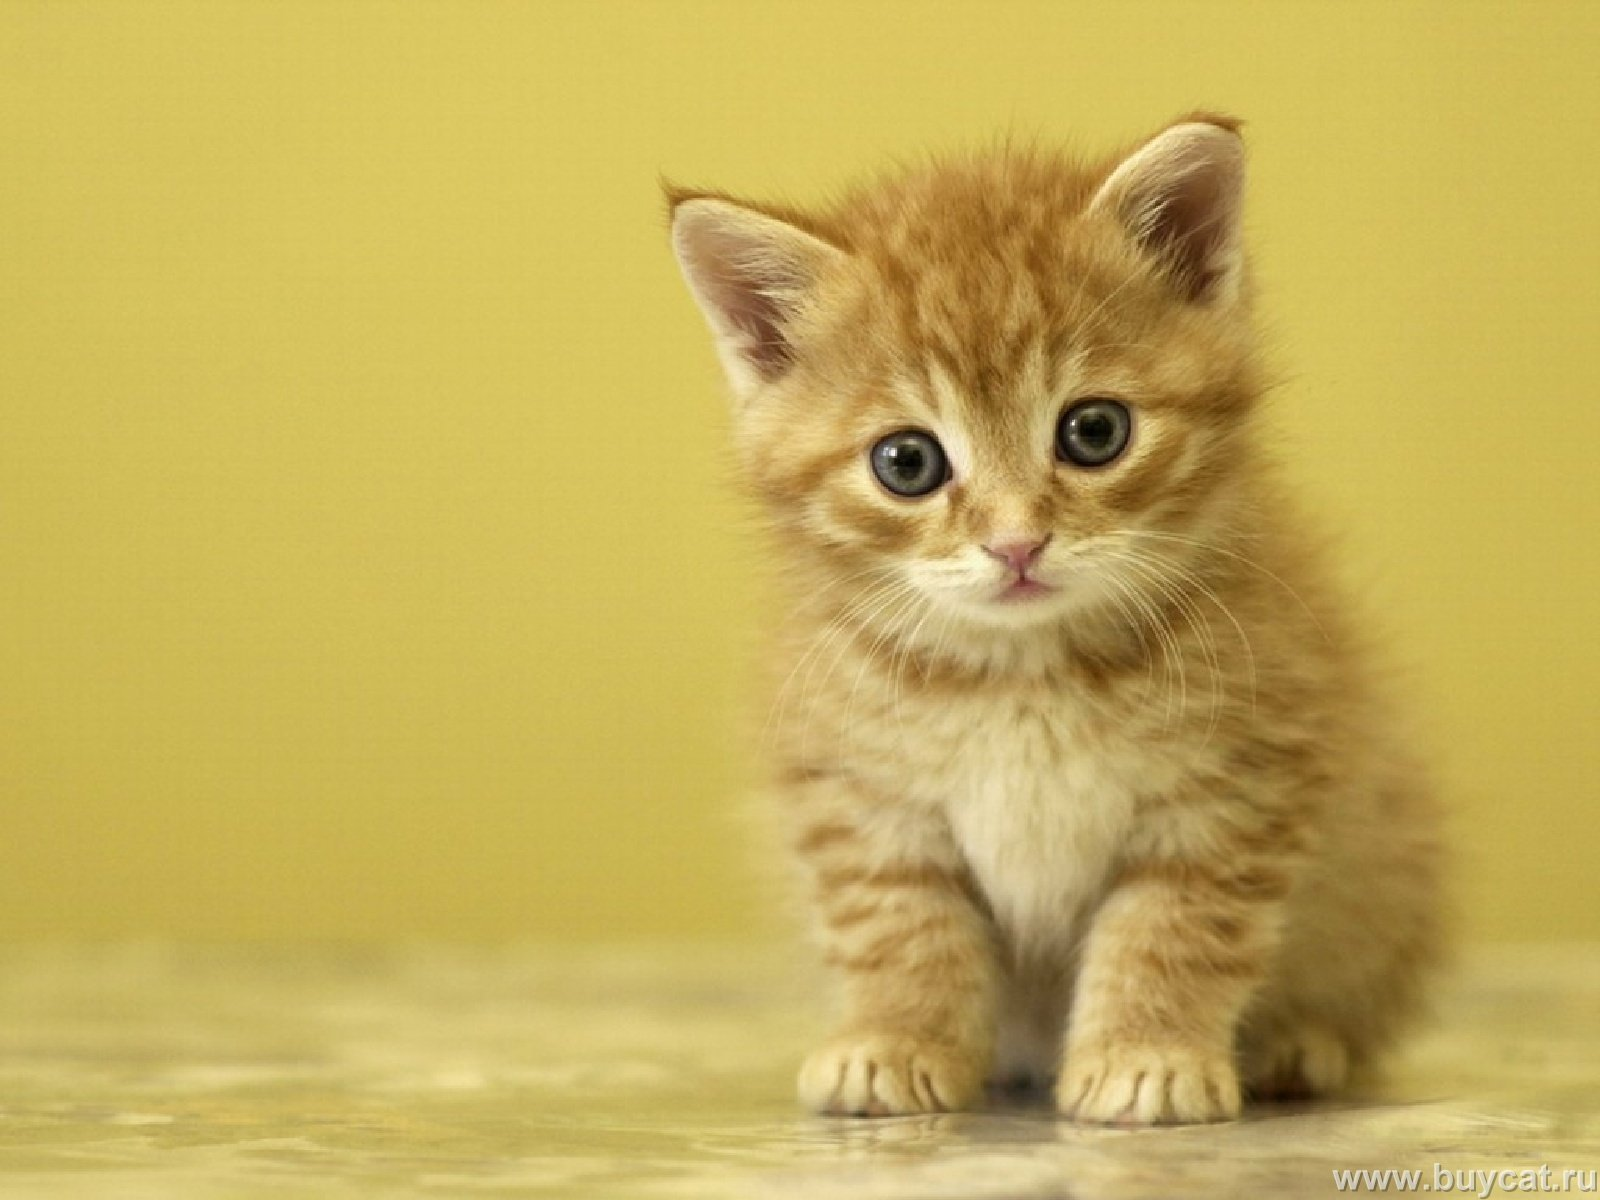 Funny Animated Cats 19 Widescreen Wallpaper